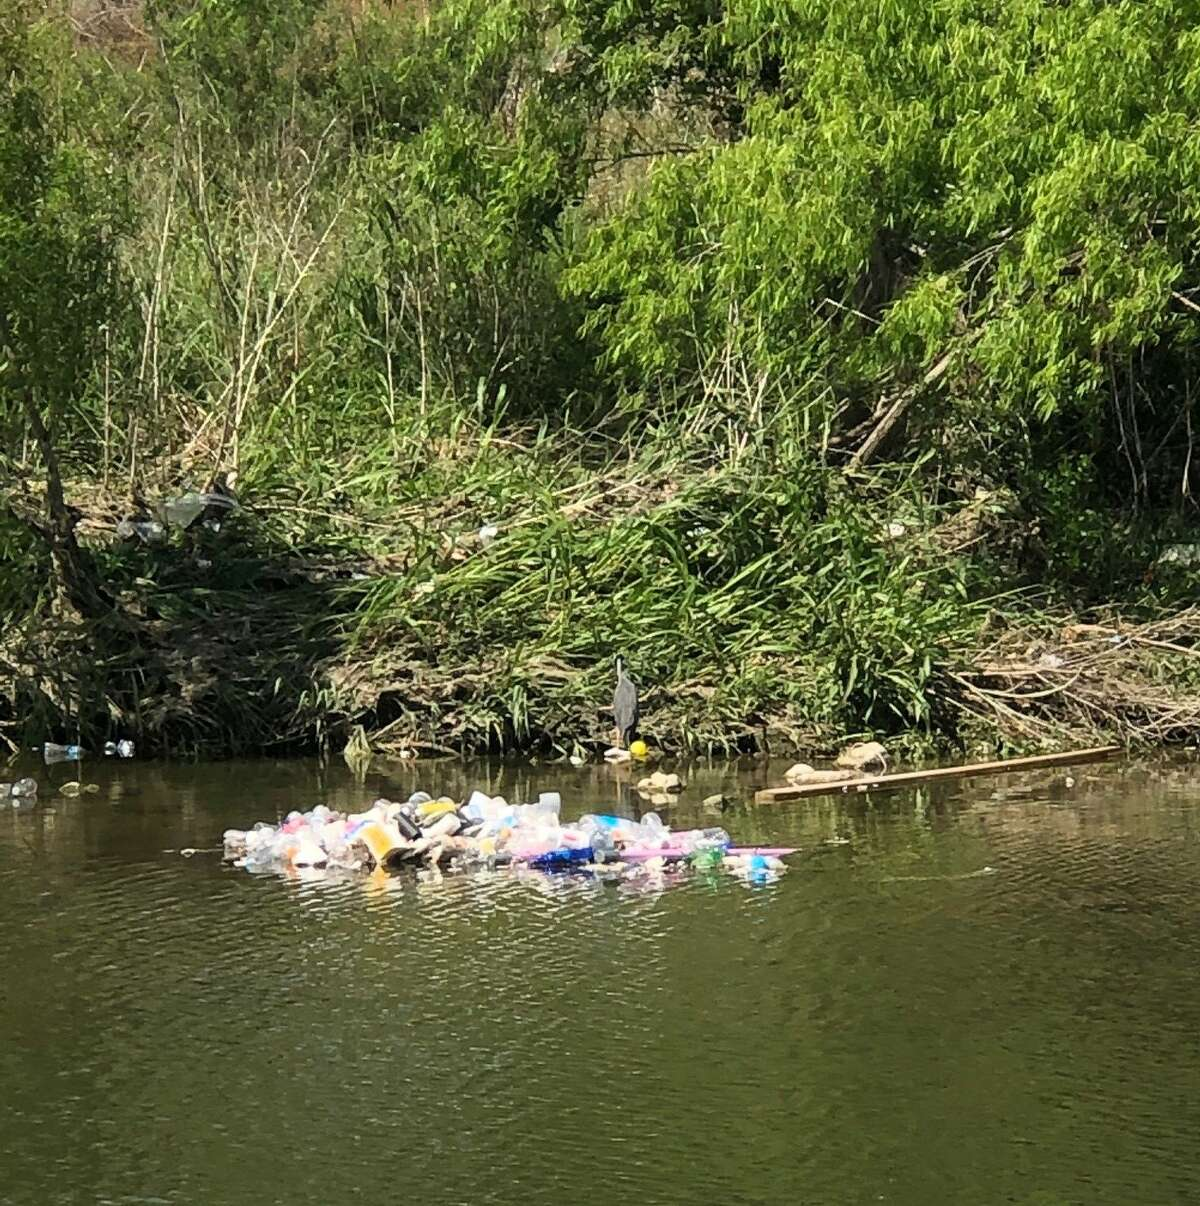 Over the weekend, it rained a bit in the area, leaving the San Antonio River Authority crews to clean up more than 4,200 pounds of trash in the past three days - and they're still going.